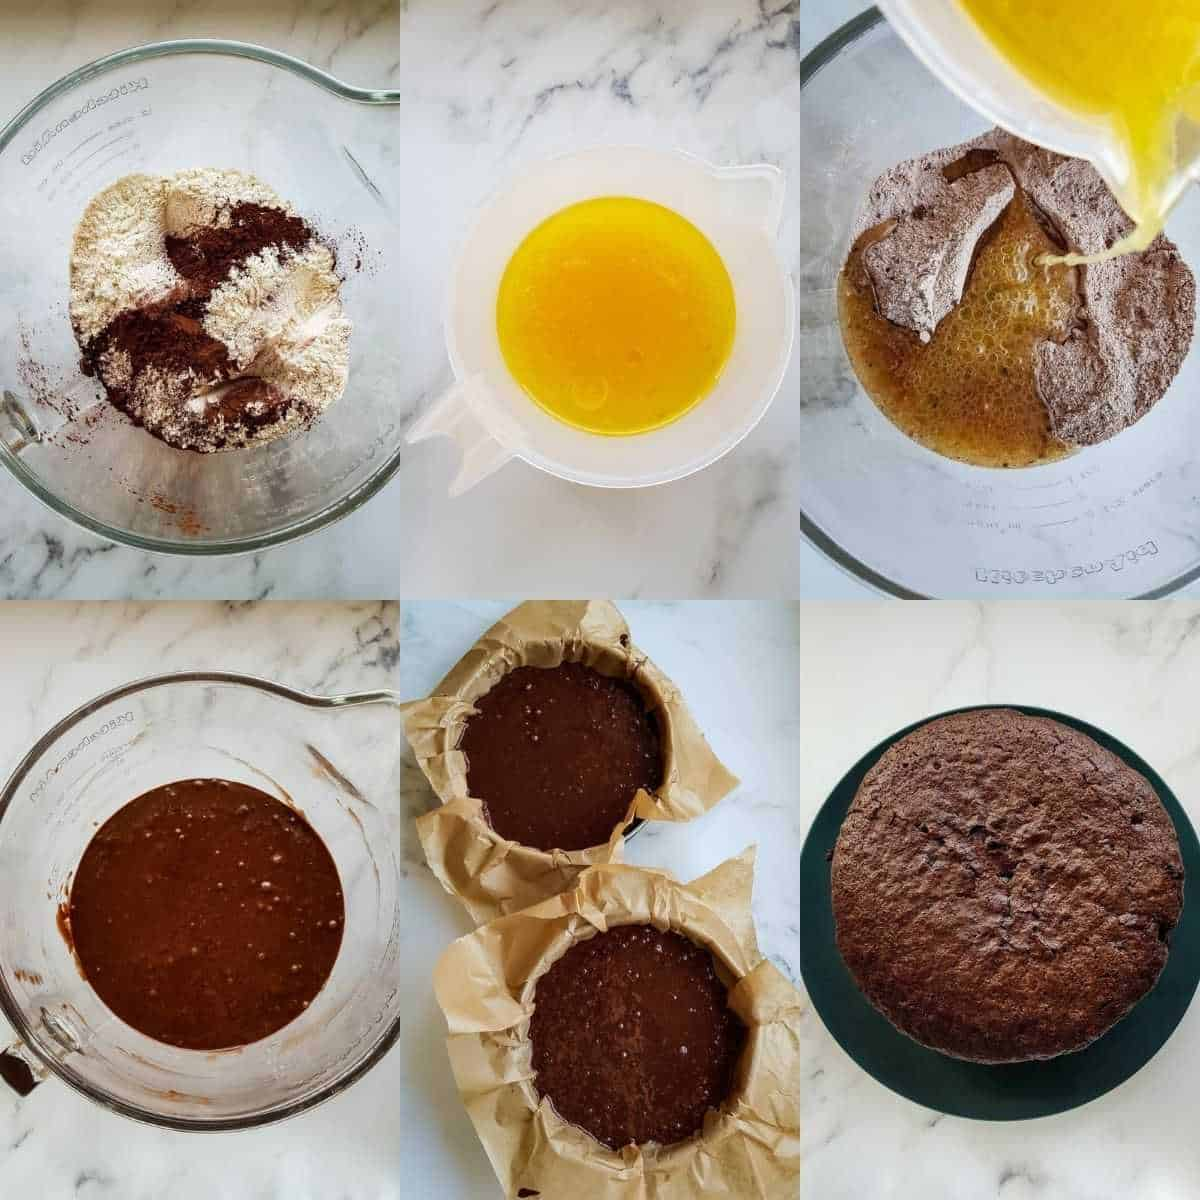 Step by step images showing how to make the chocolate orange cake.